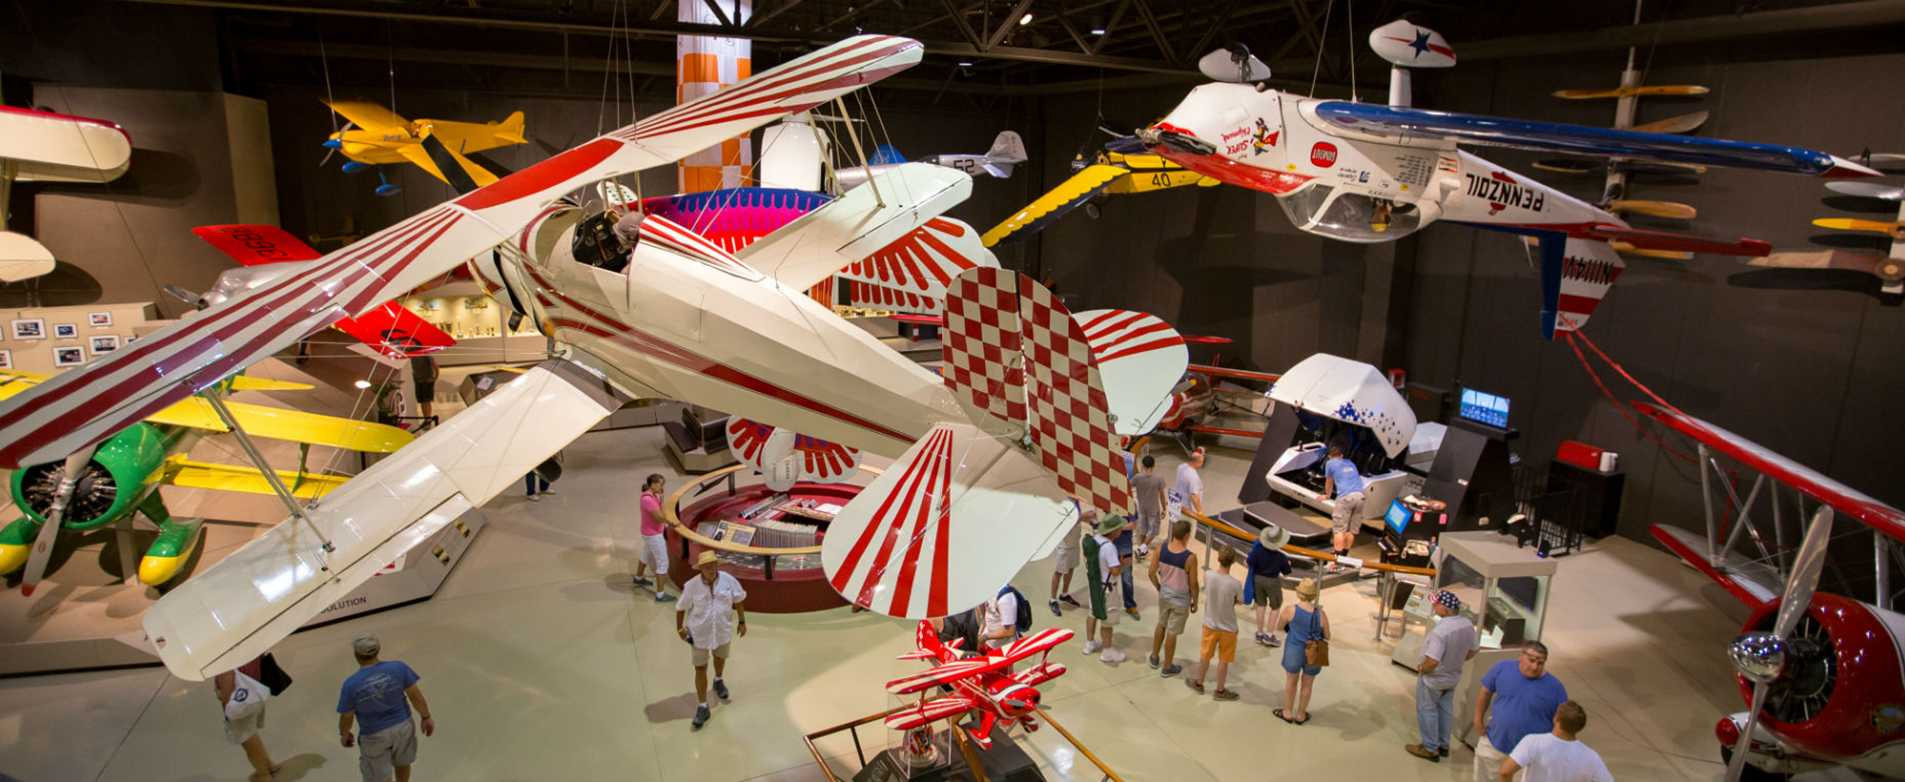 Airplane Exhibit at EAA Aviation Museum